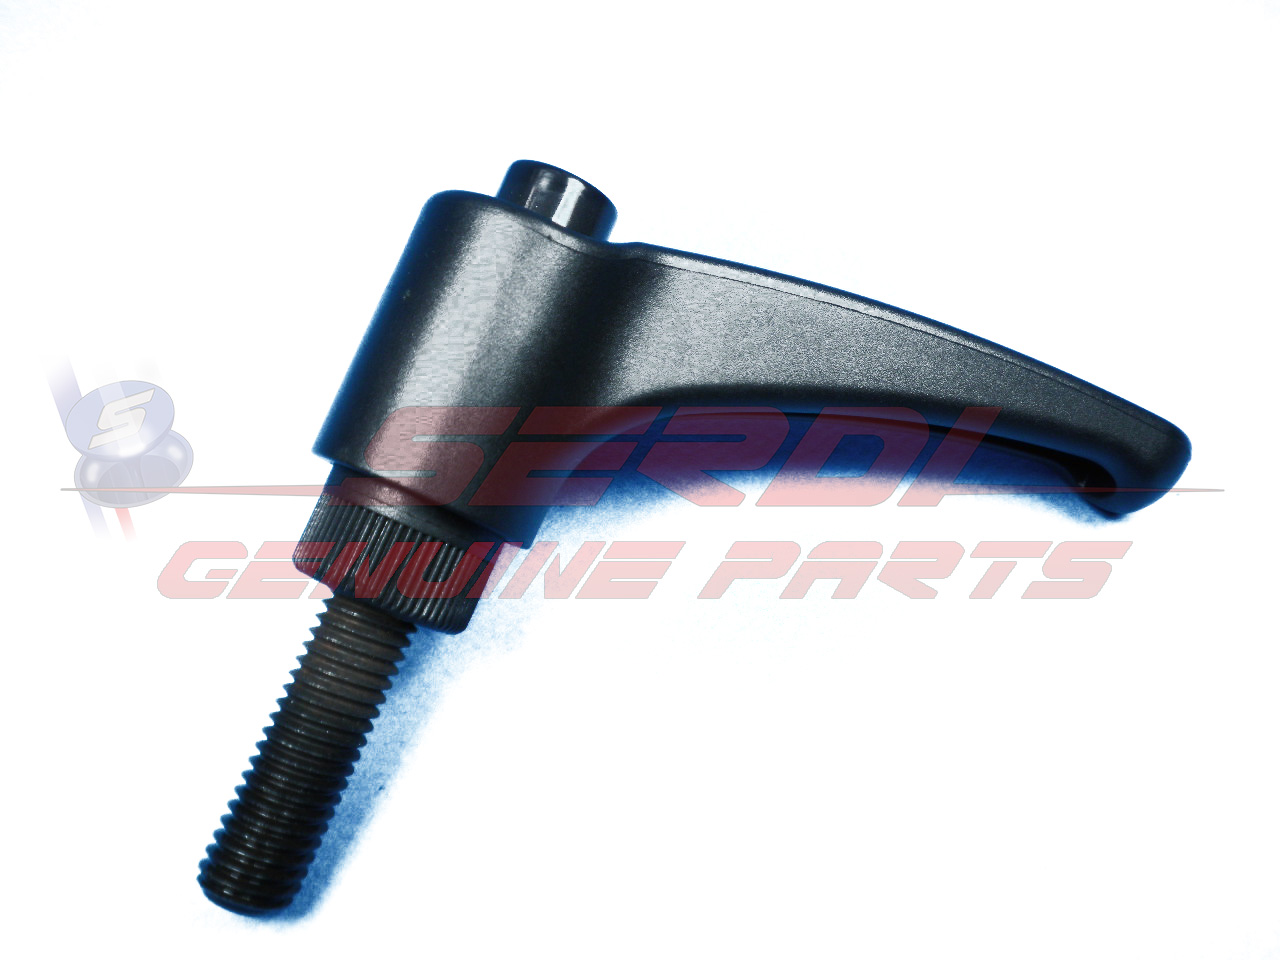 INDEXABLE HANDLE M10 x 30 mm